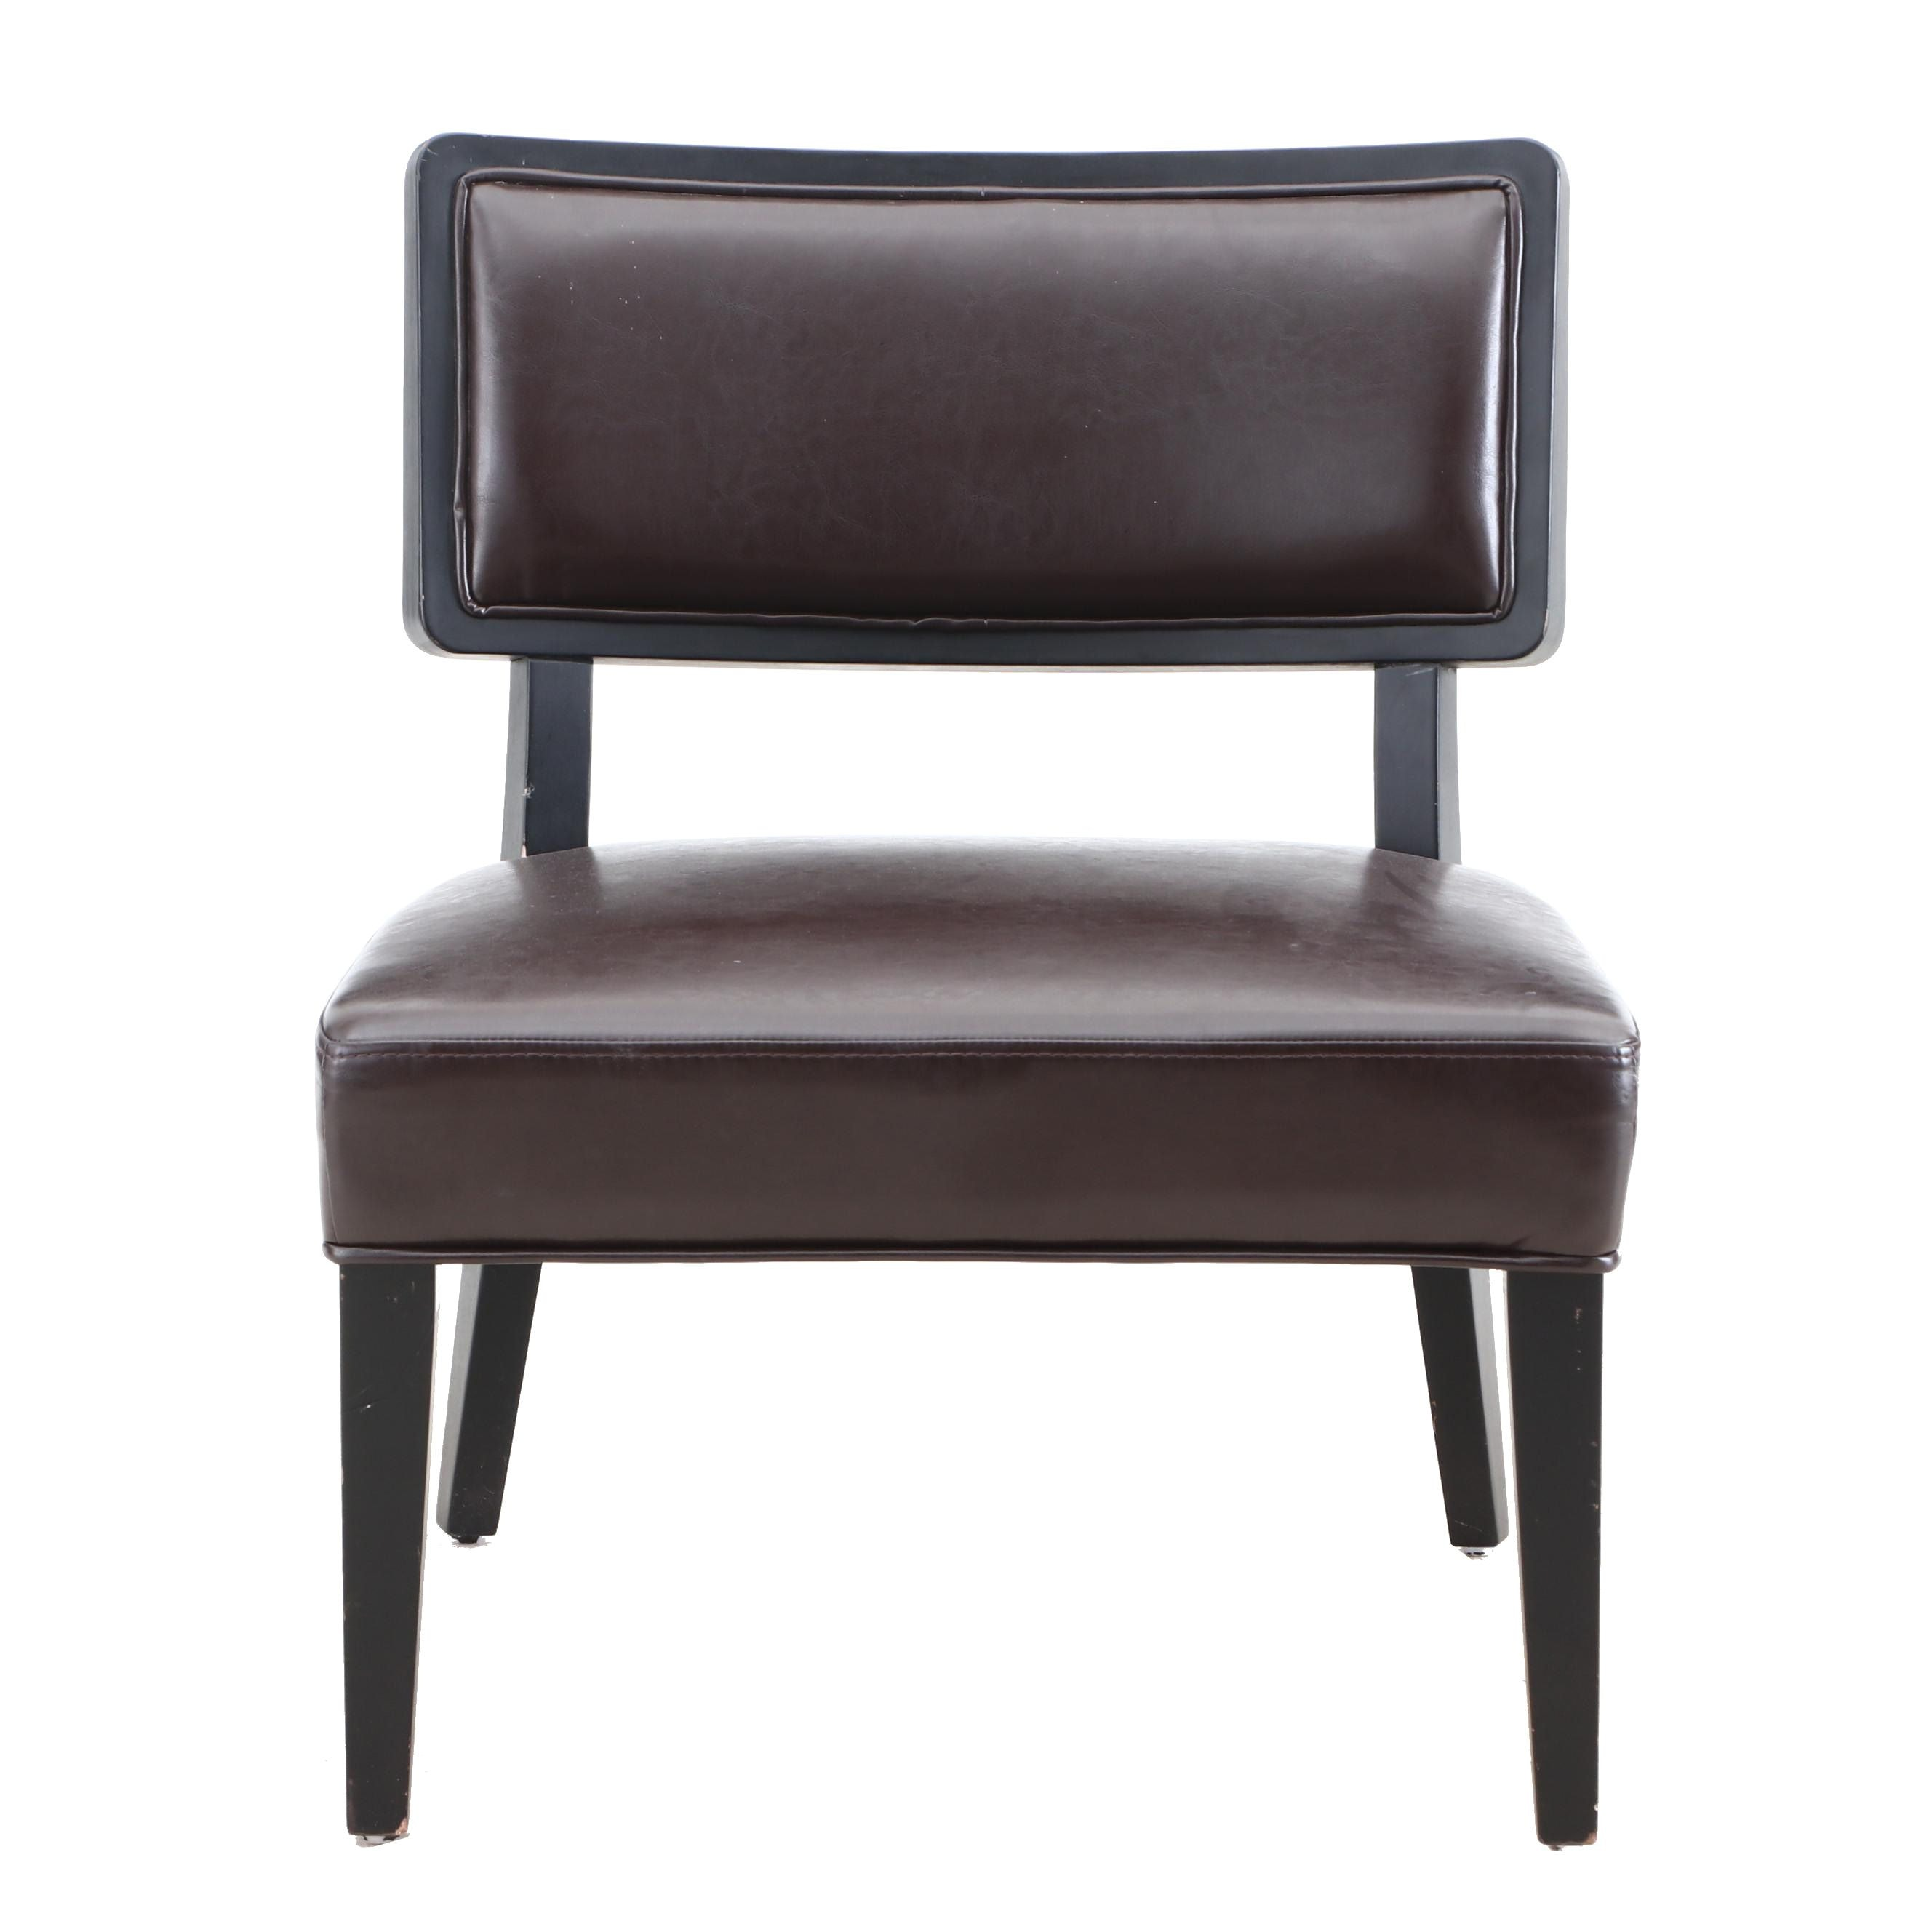 Upholstered Side Chair in Brown Faux Leather